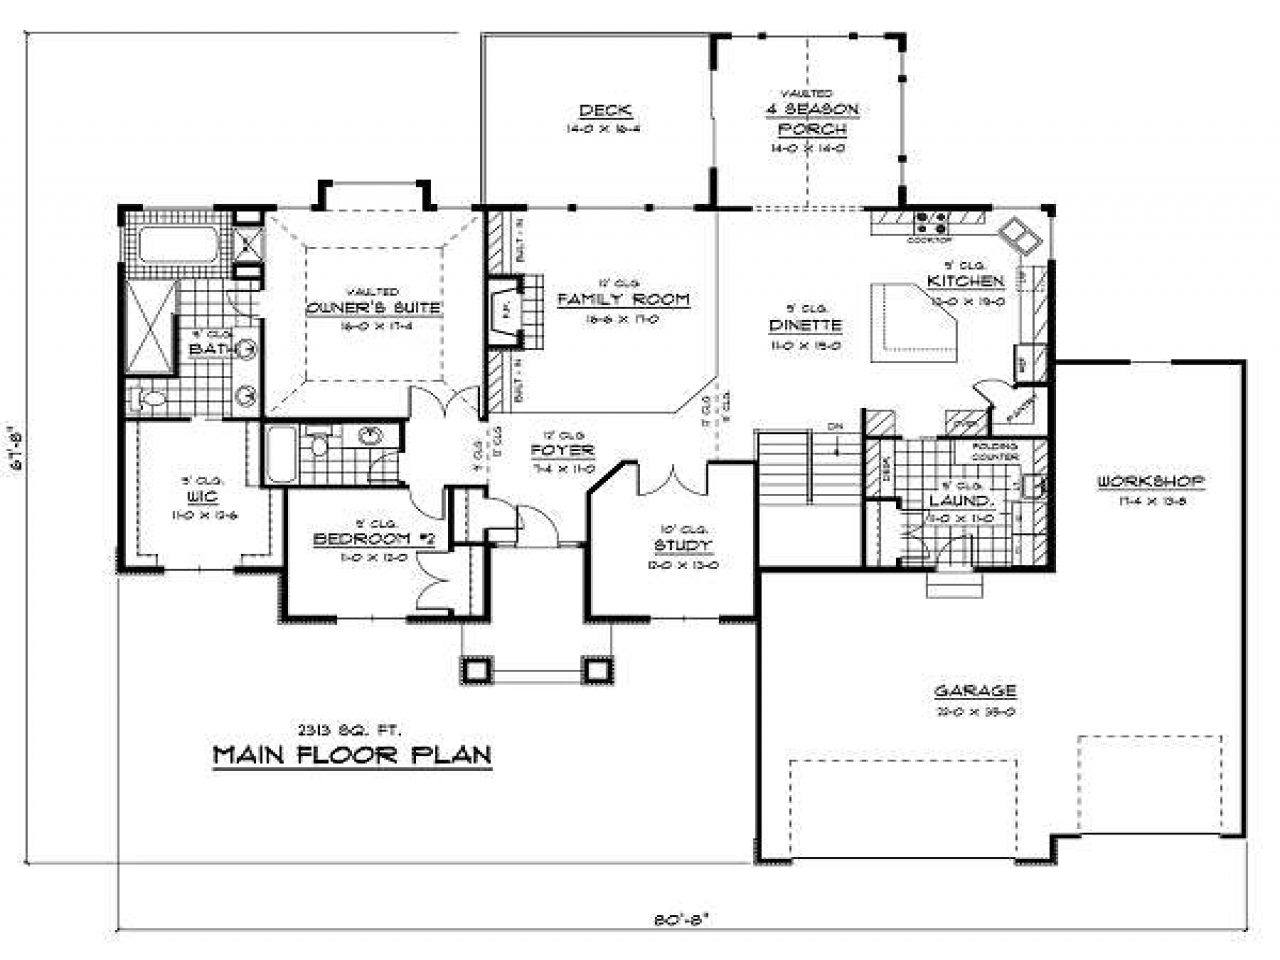 House blueprints examples 1 story house blueprints funky for House plan examples